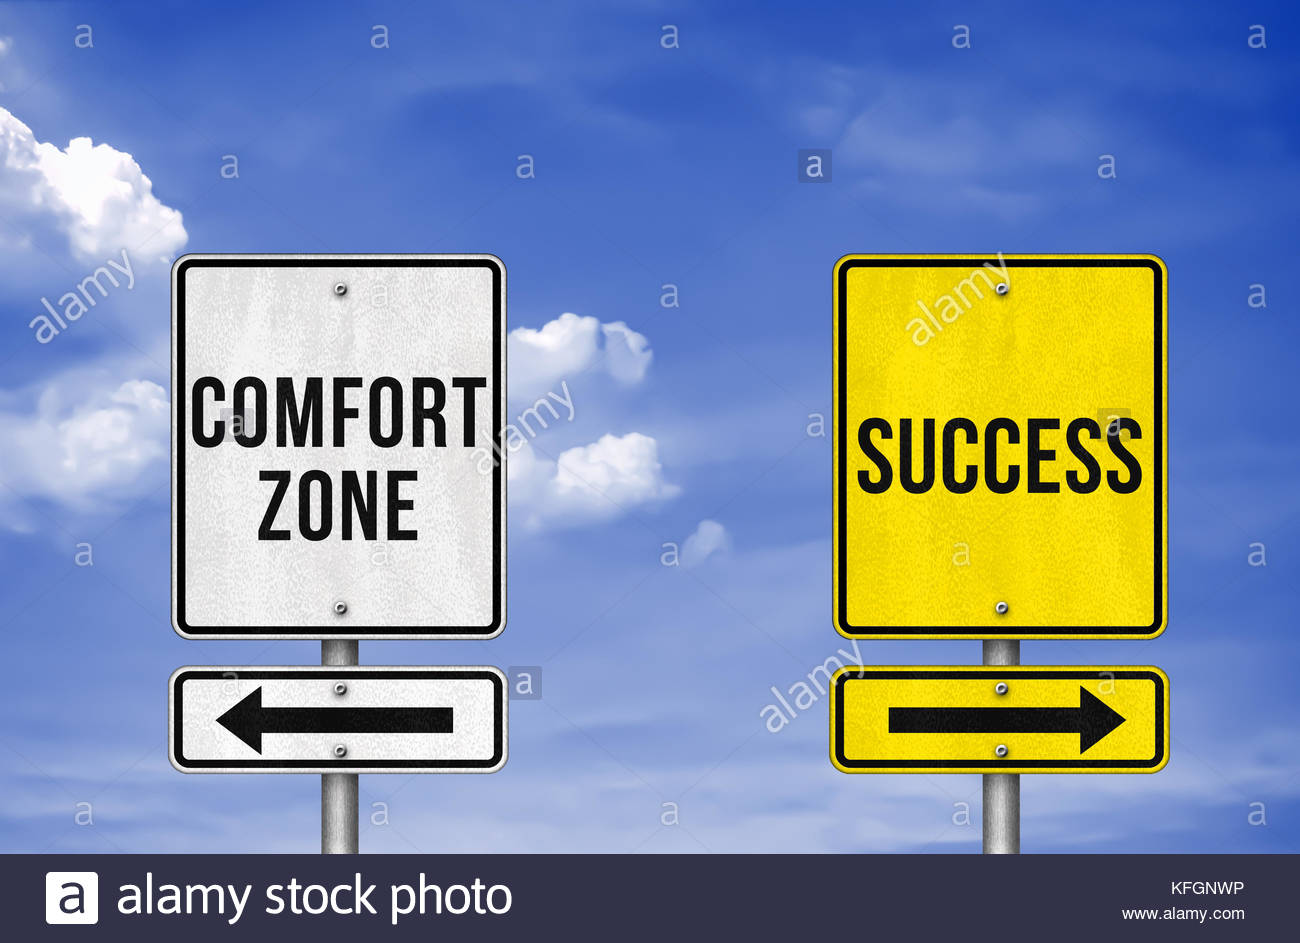 Career decision - comfort zone or success - Stock Image